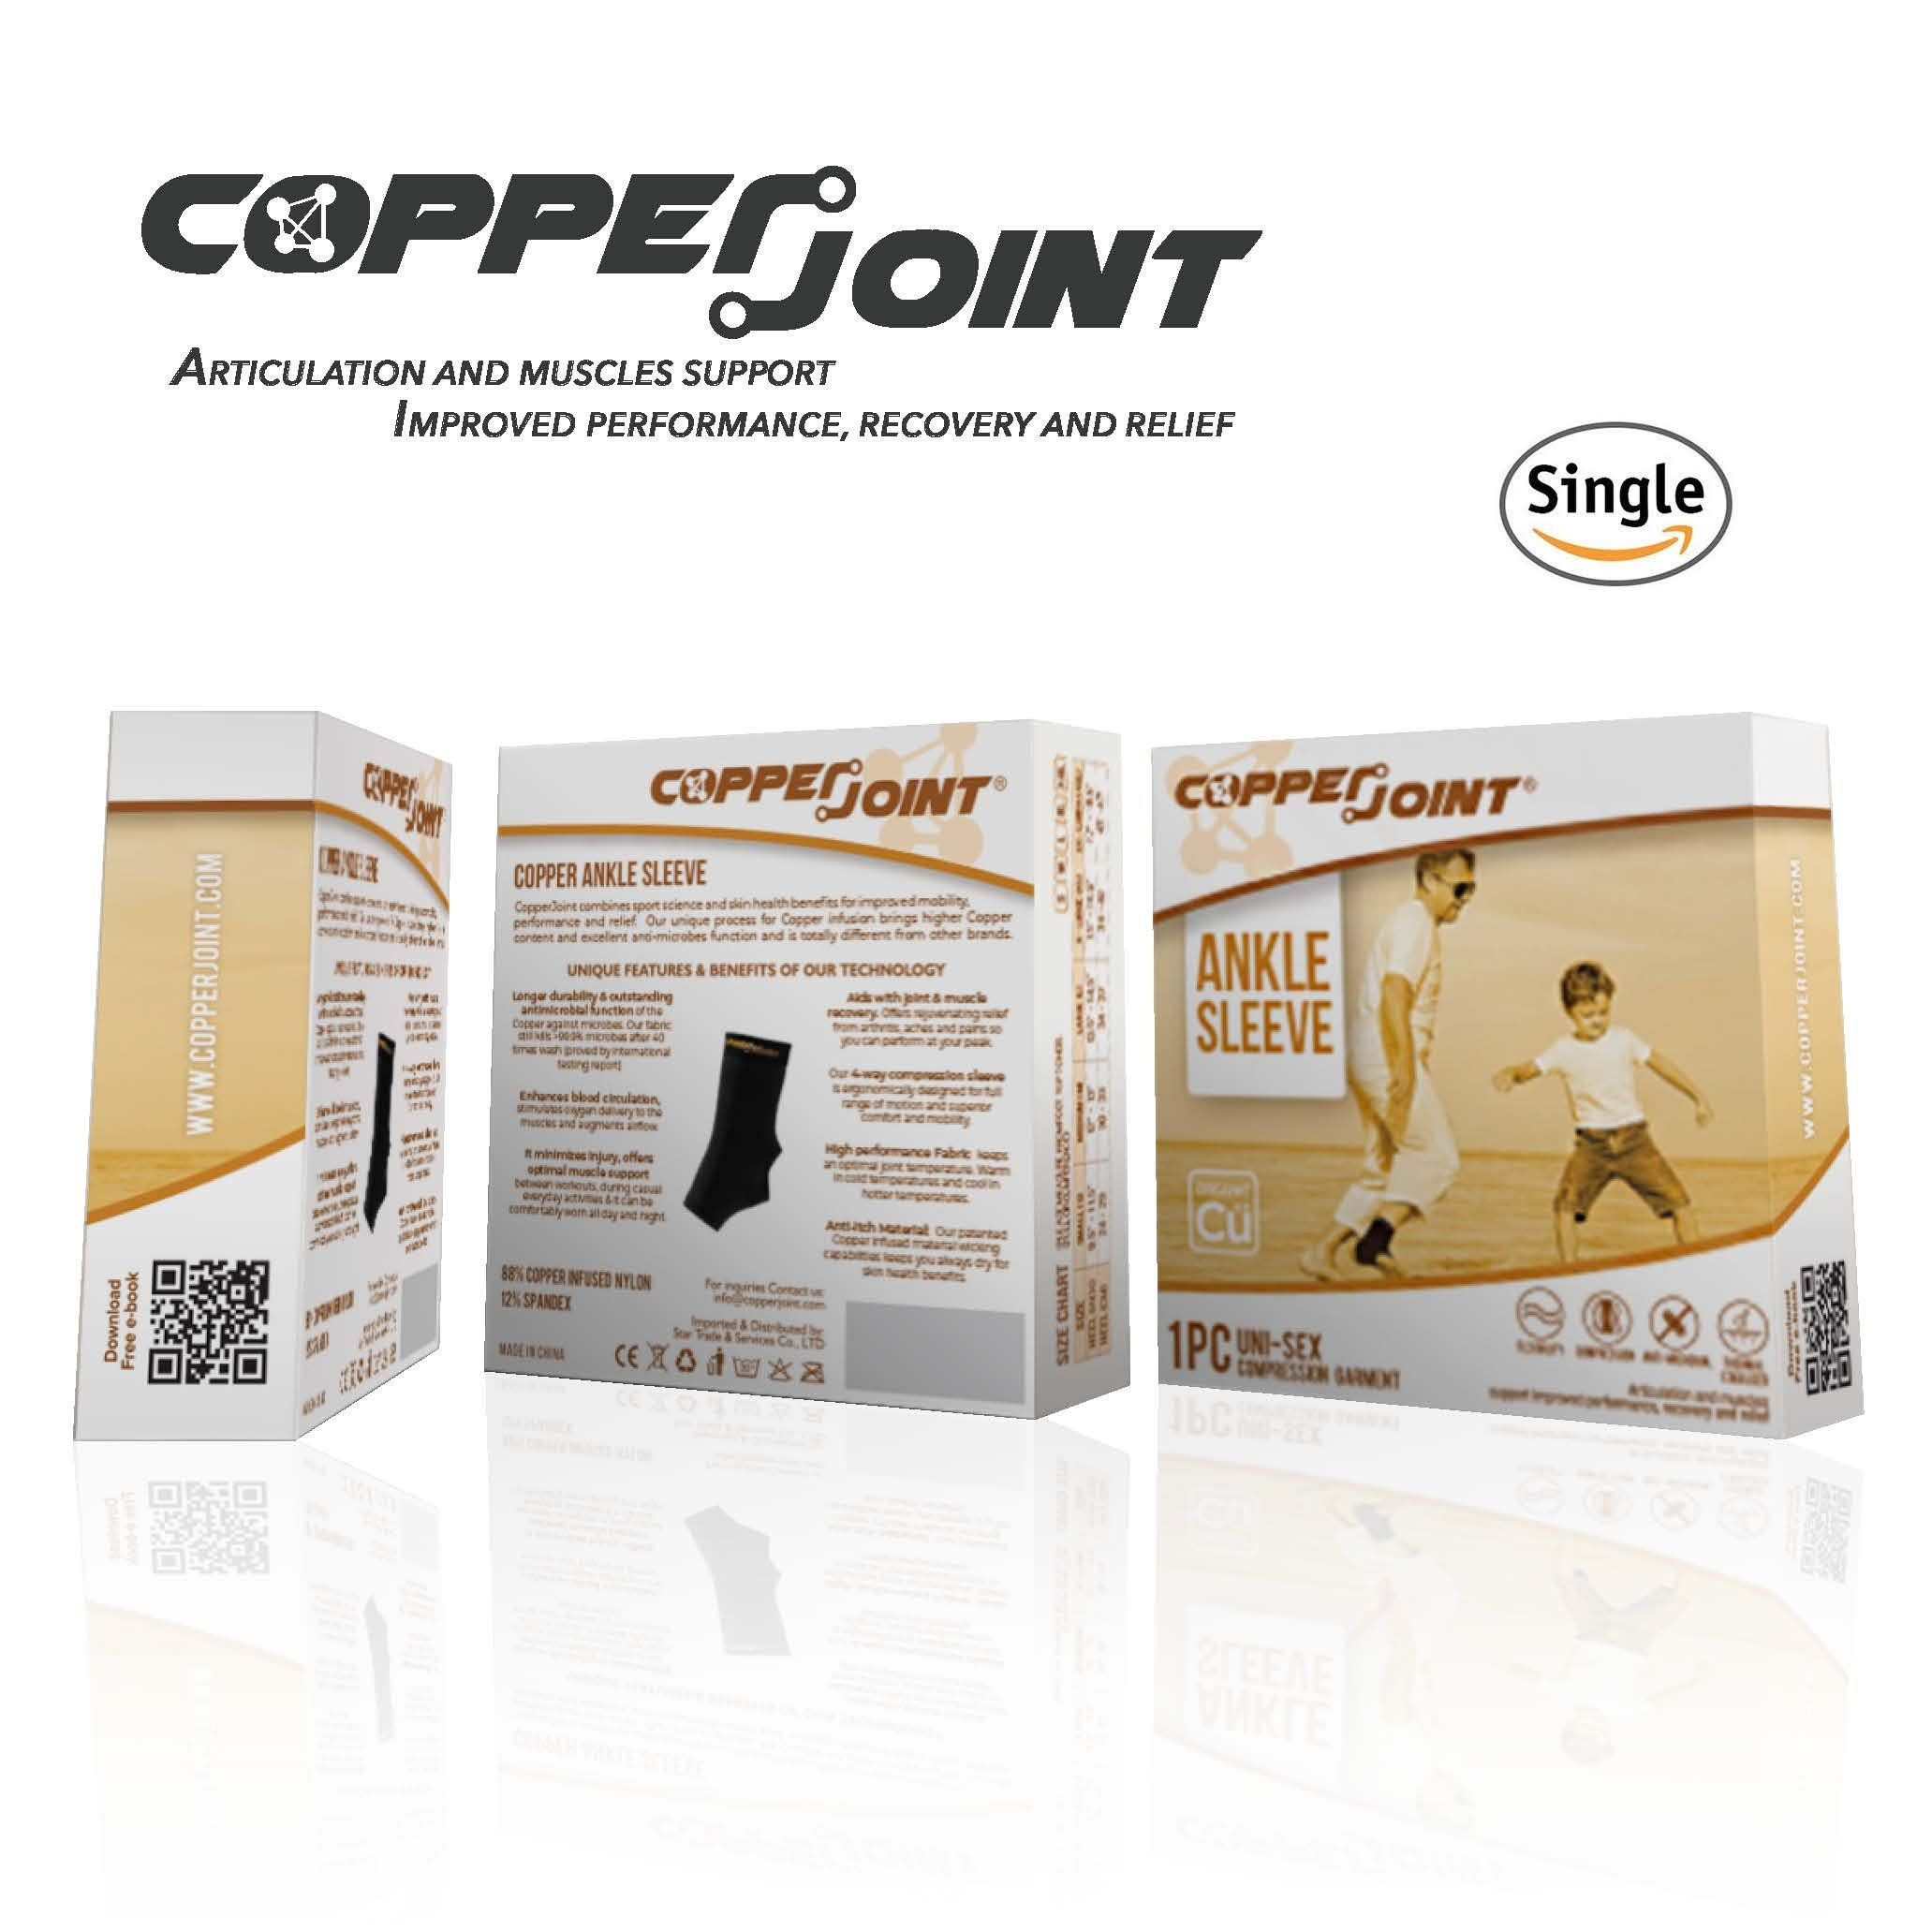 CopperJoint Copper-Infused Compression Ankle Sleeve, High-Performance, Breathable Design Provides Comfortable and Durable Joint Support for All Lifestyles, Single Sleeve (Medium) by CopperJoint (Image #5)